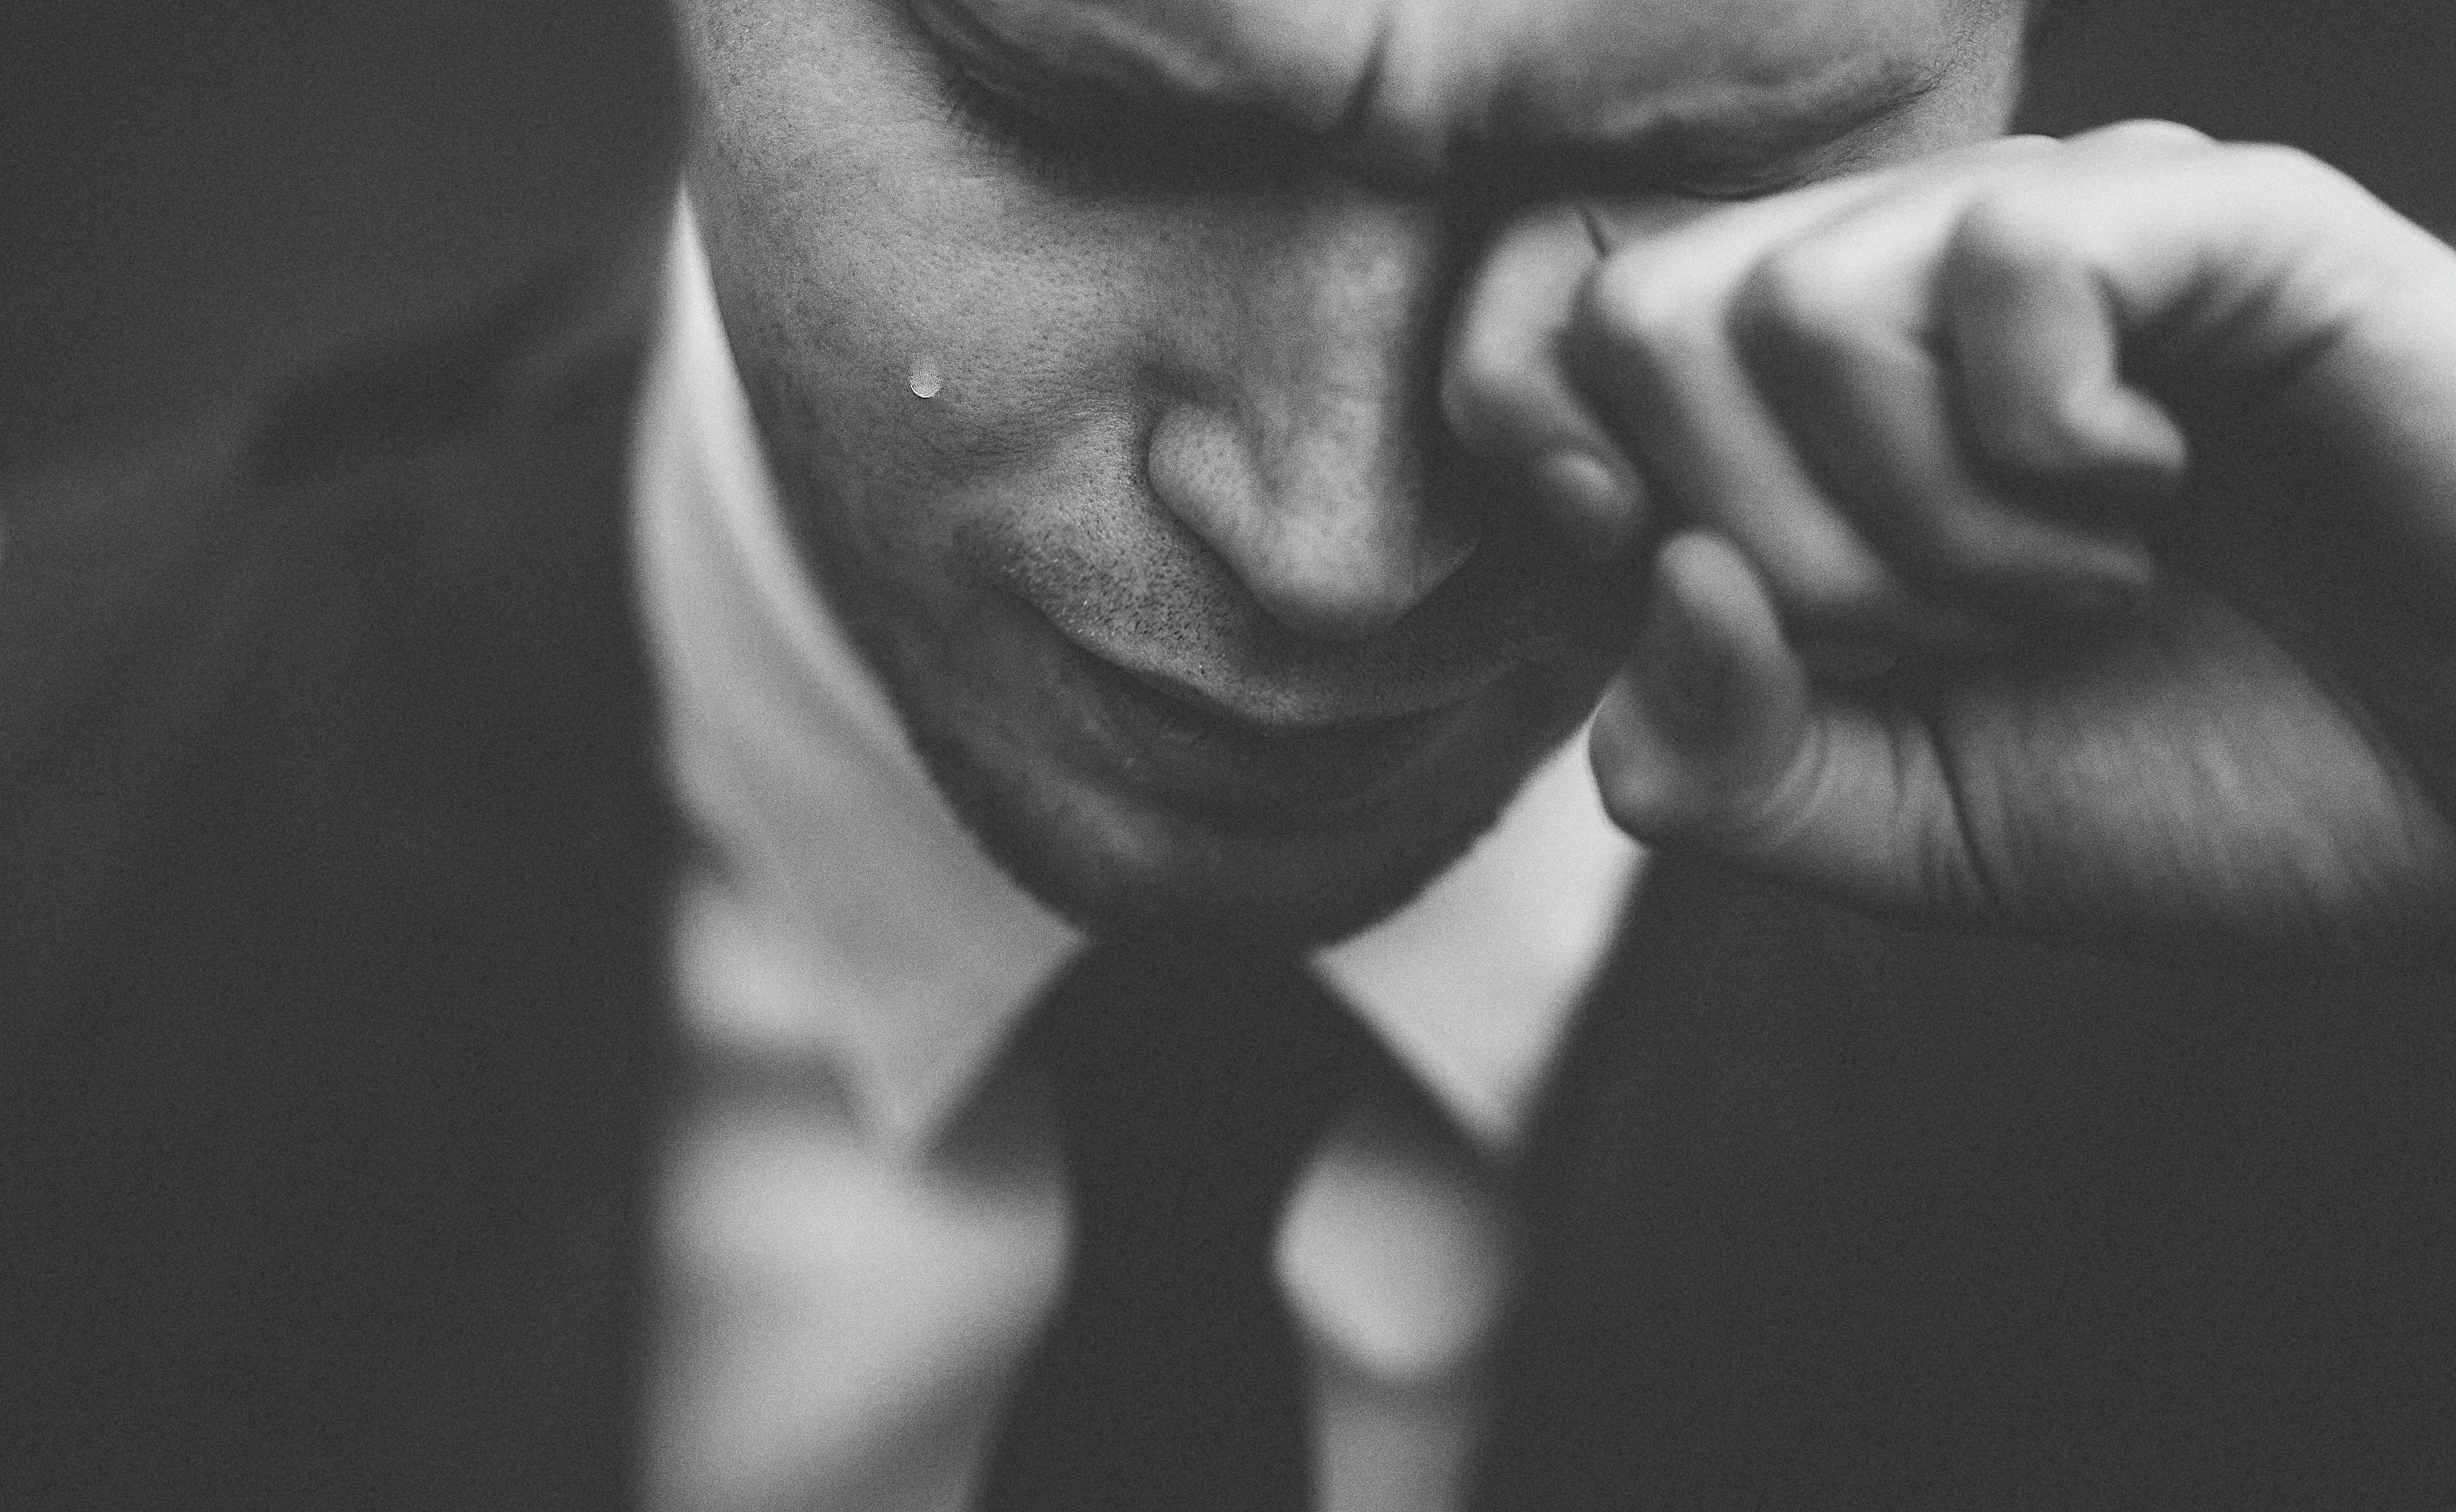 A black-and-white shot of a crying man in a suit and tie